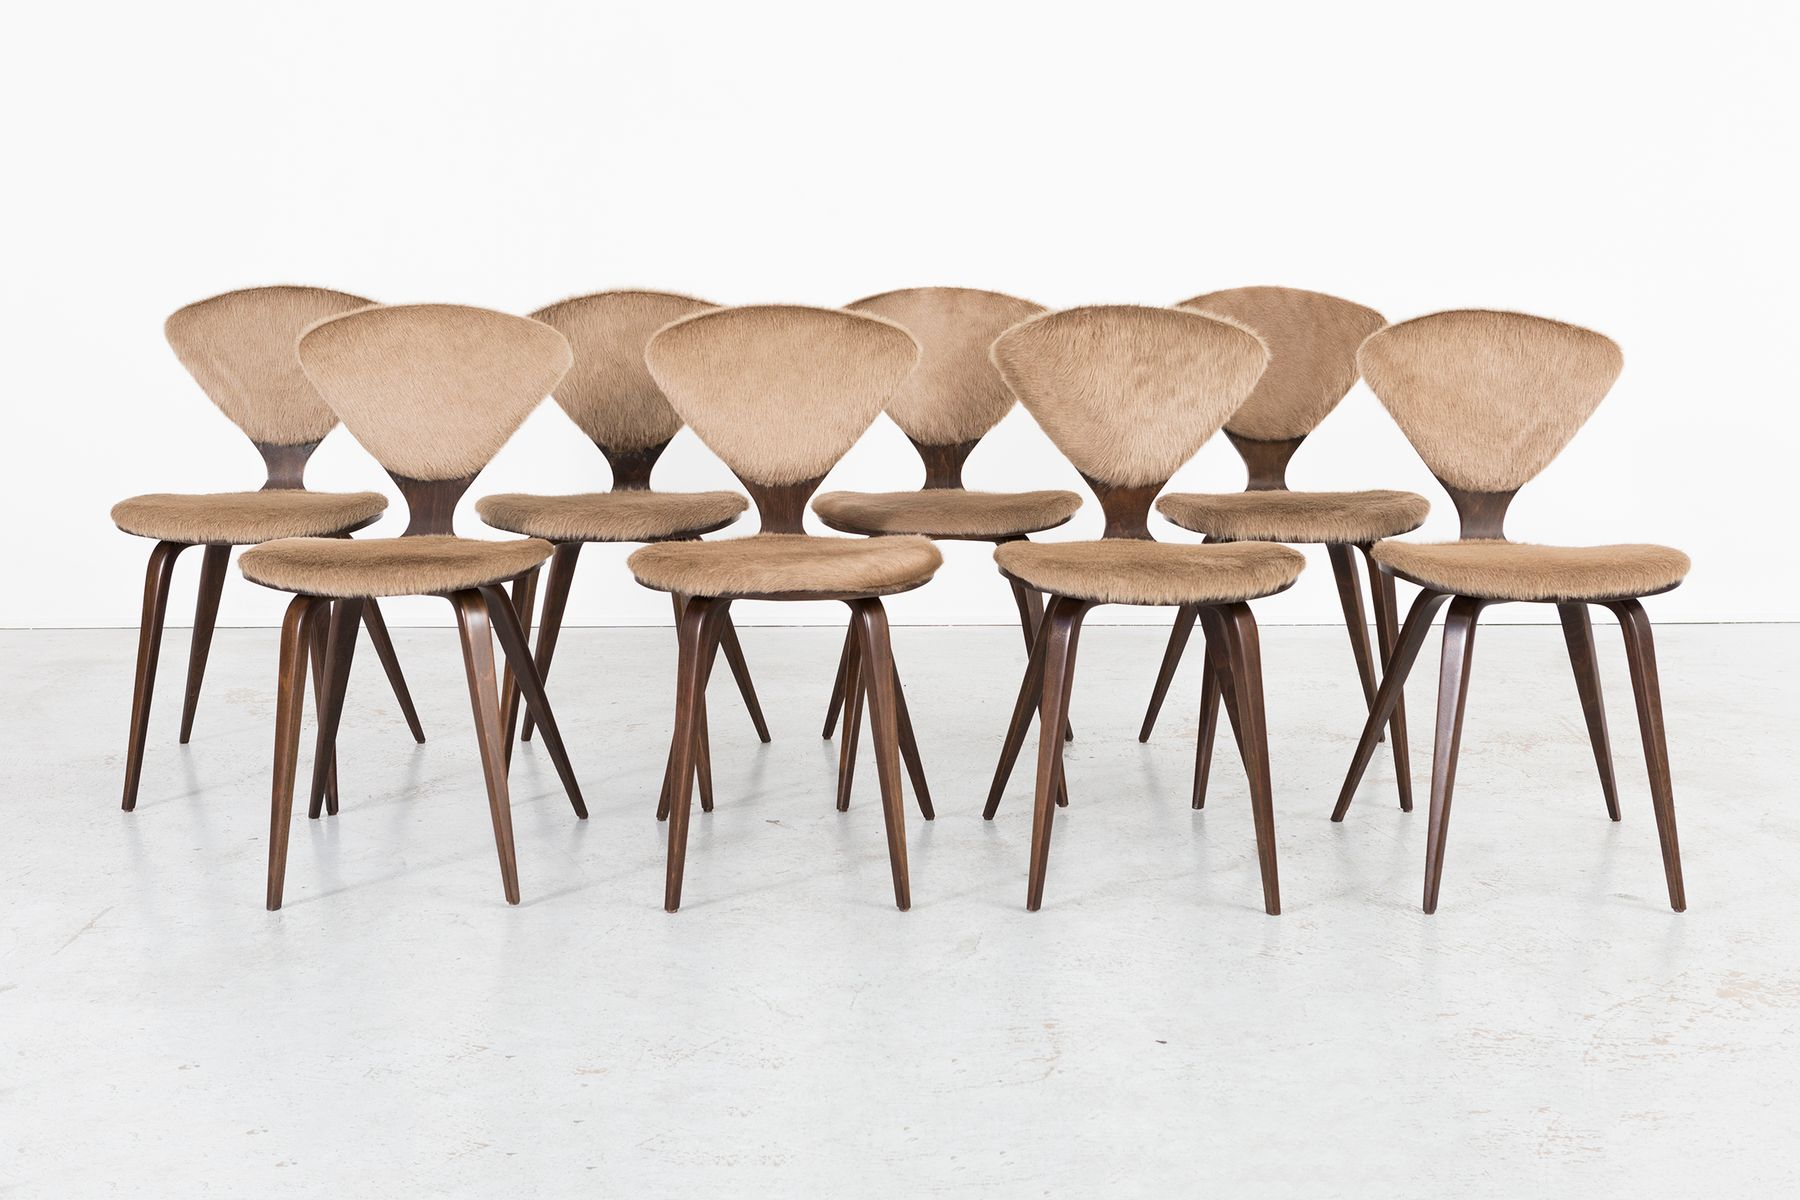 Cherner Furniture. Vintage Dining Chairs By Norman Cherner For ...